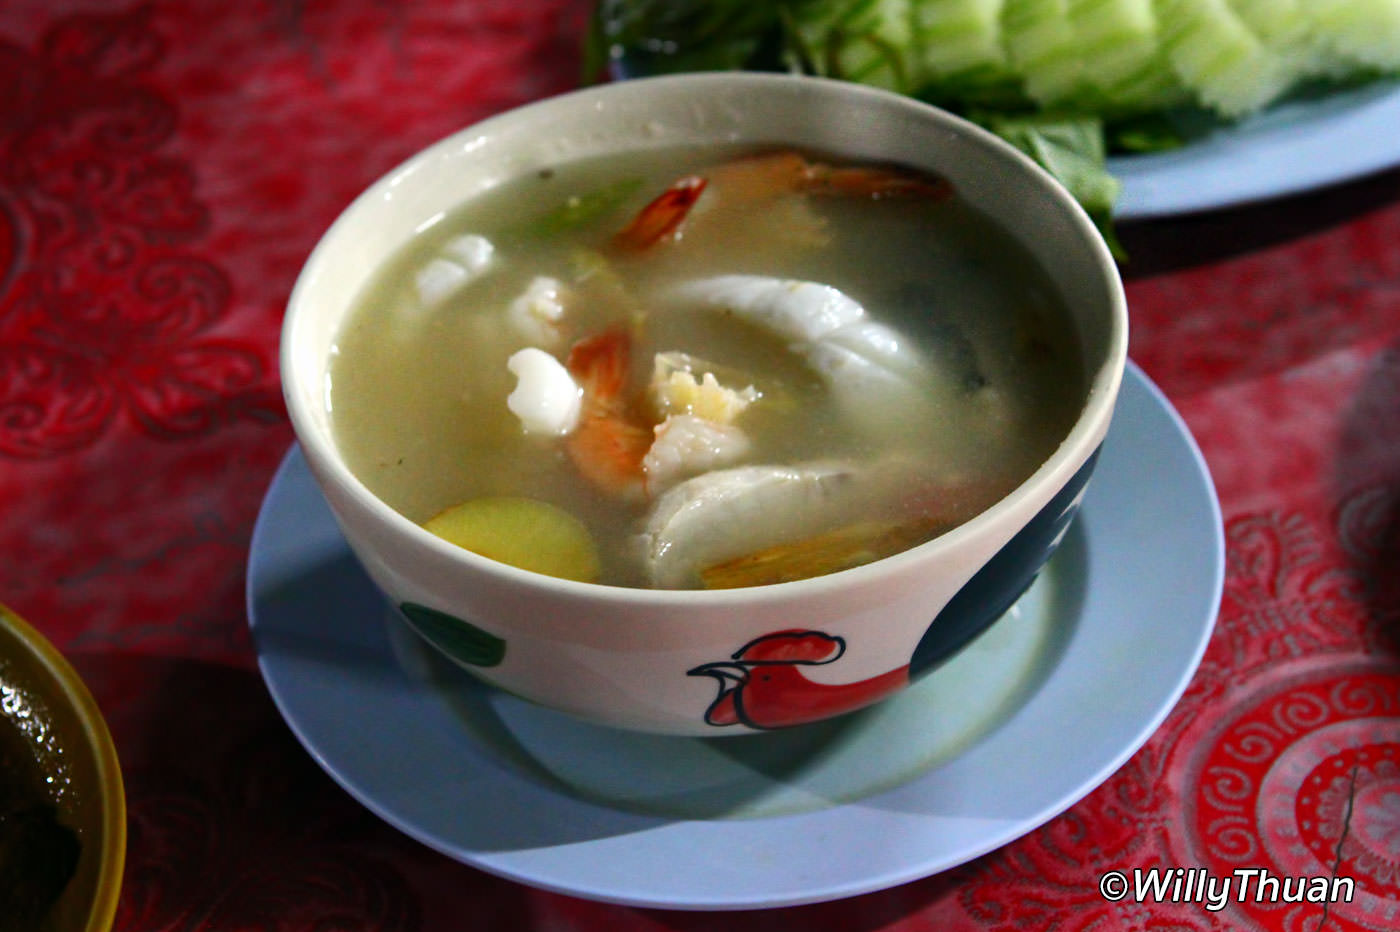 Poh Taek Soup at Nam Yoi restaurant